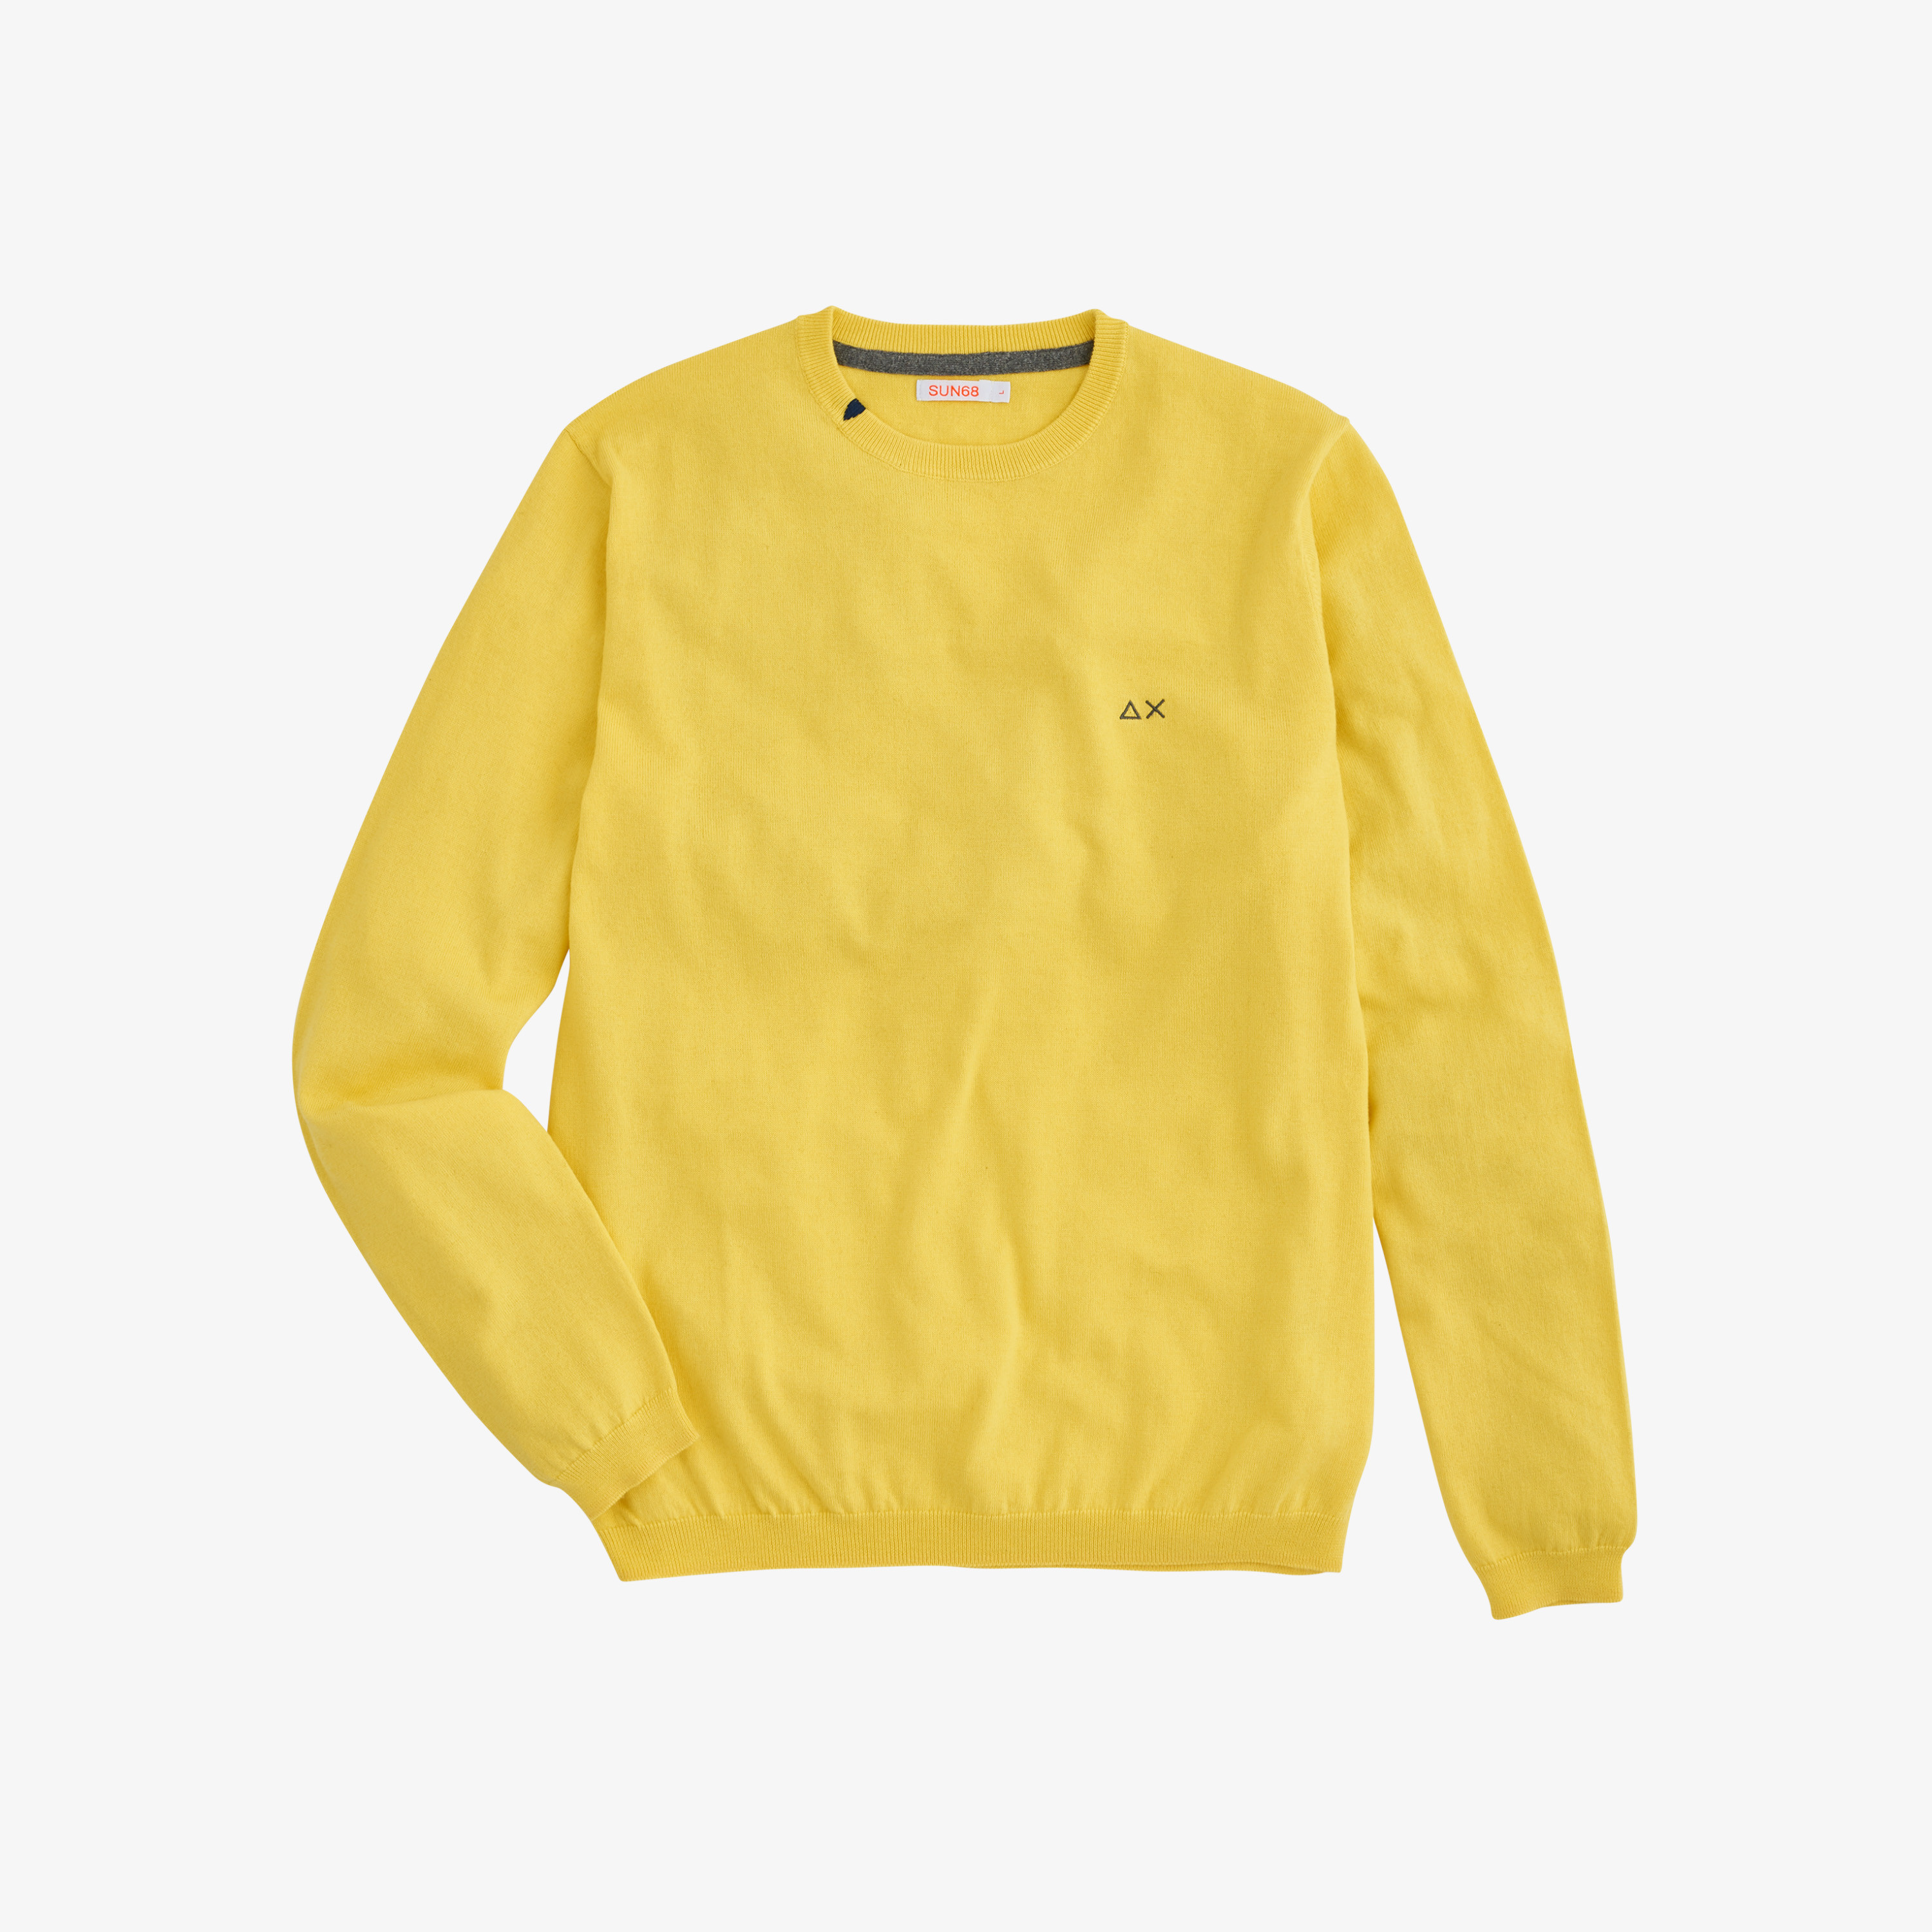 BOY'S ROUND NECK SOLID YELLOW